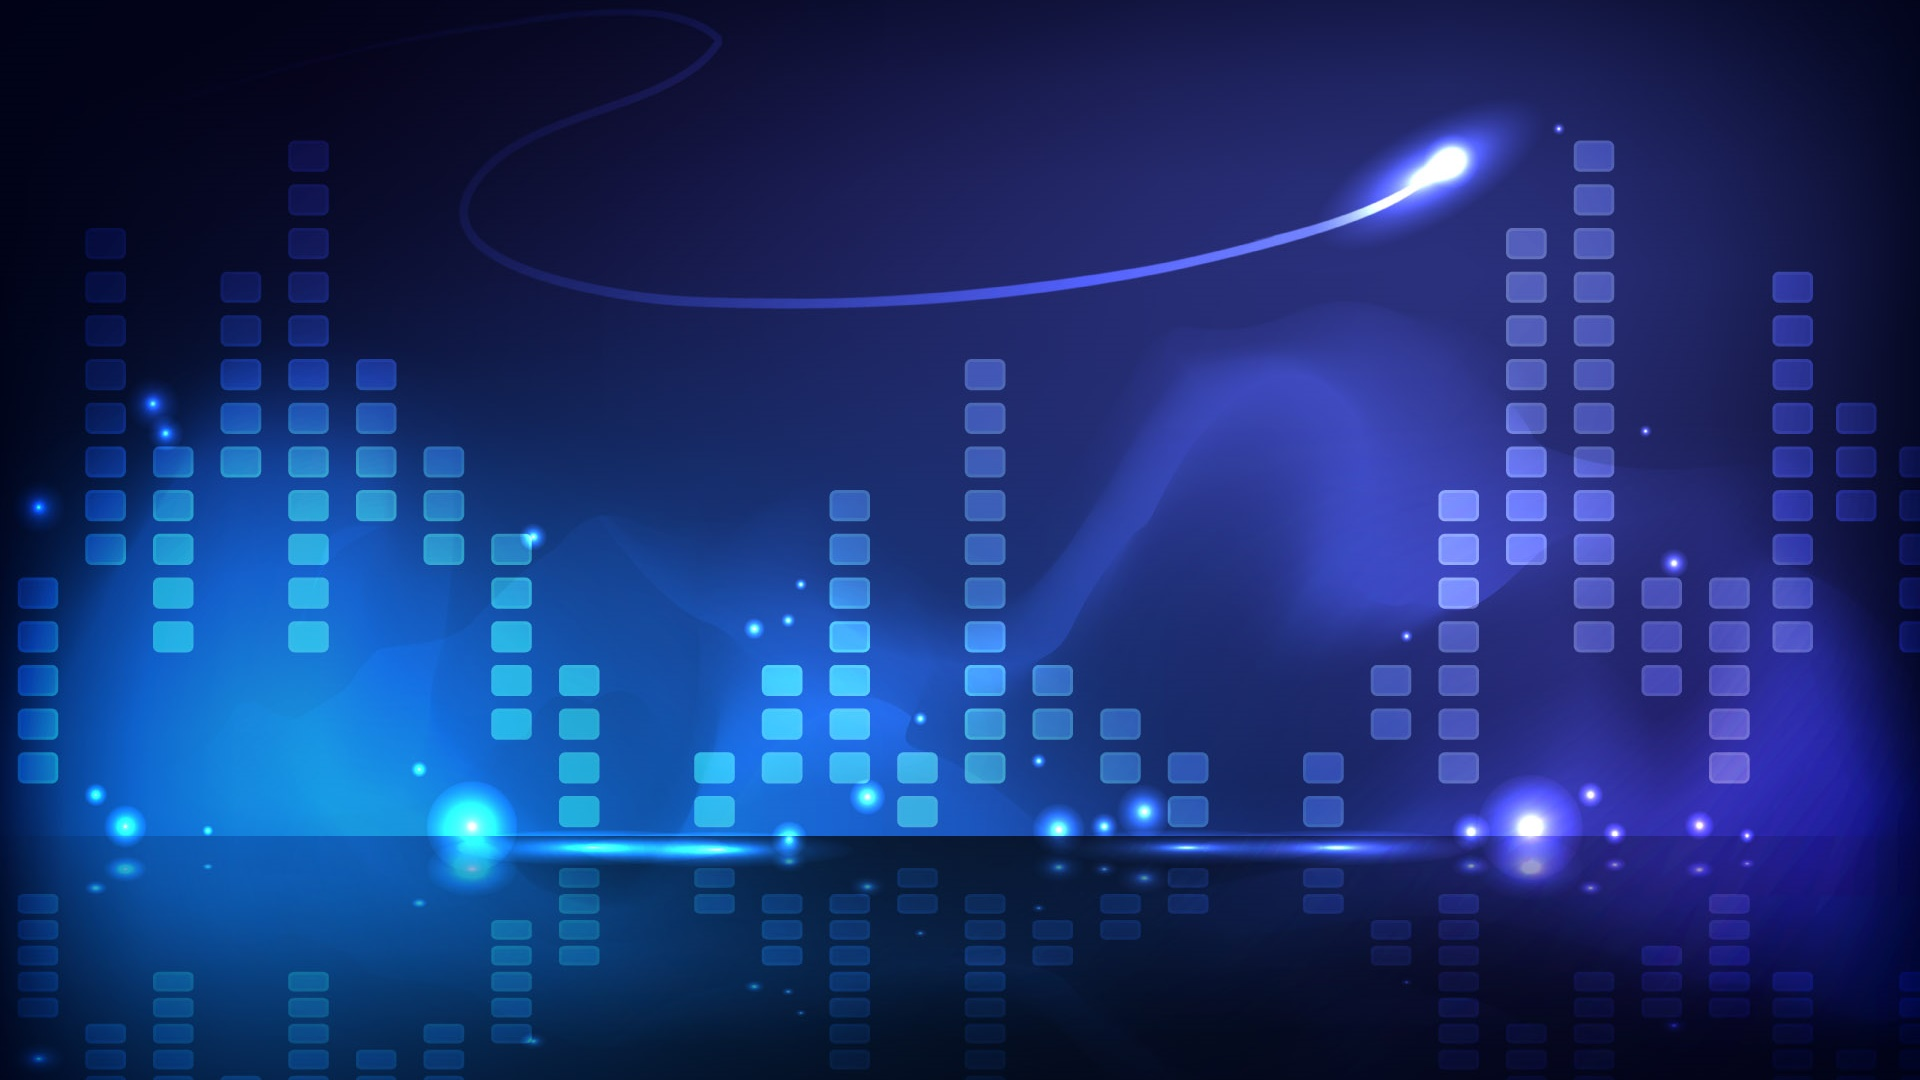 Blue style, music column, abstract pictures 1920x1080 wallpaper